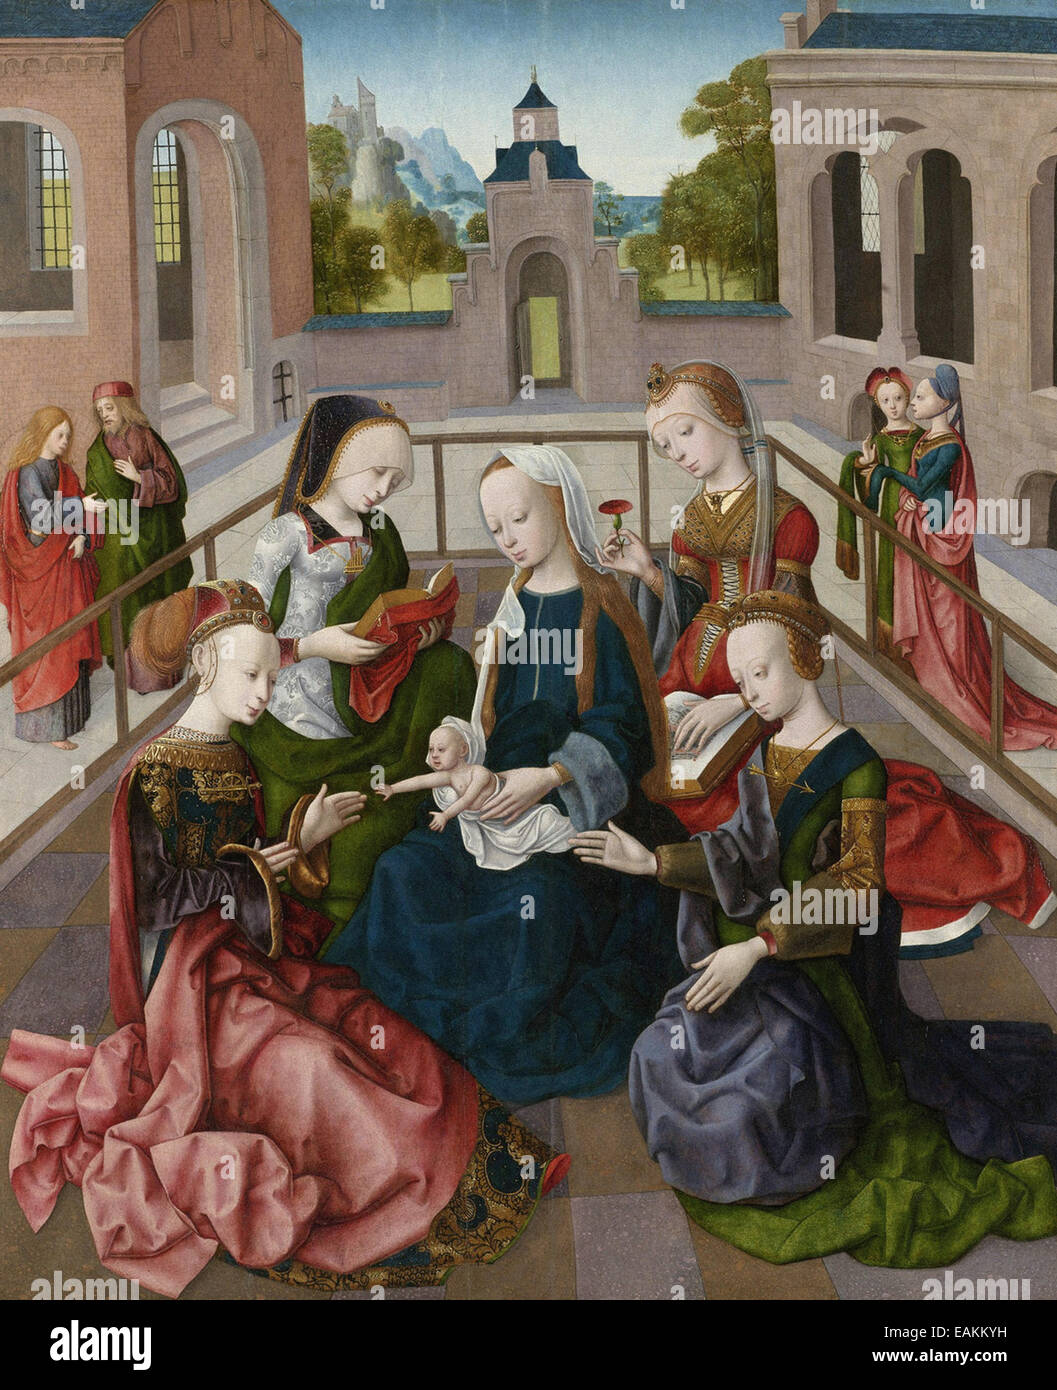 Master of the Virgo inter Virgines  The Virgin and Child with Saints Catherine, Cecilia, Barbara, and Ursula - Stock Image